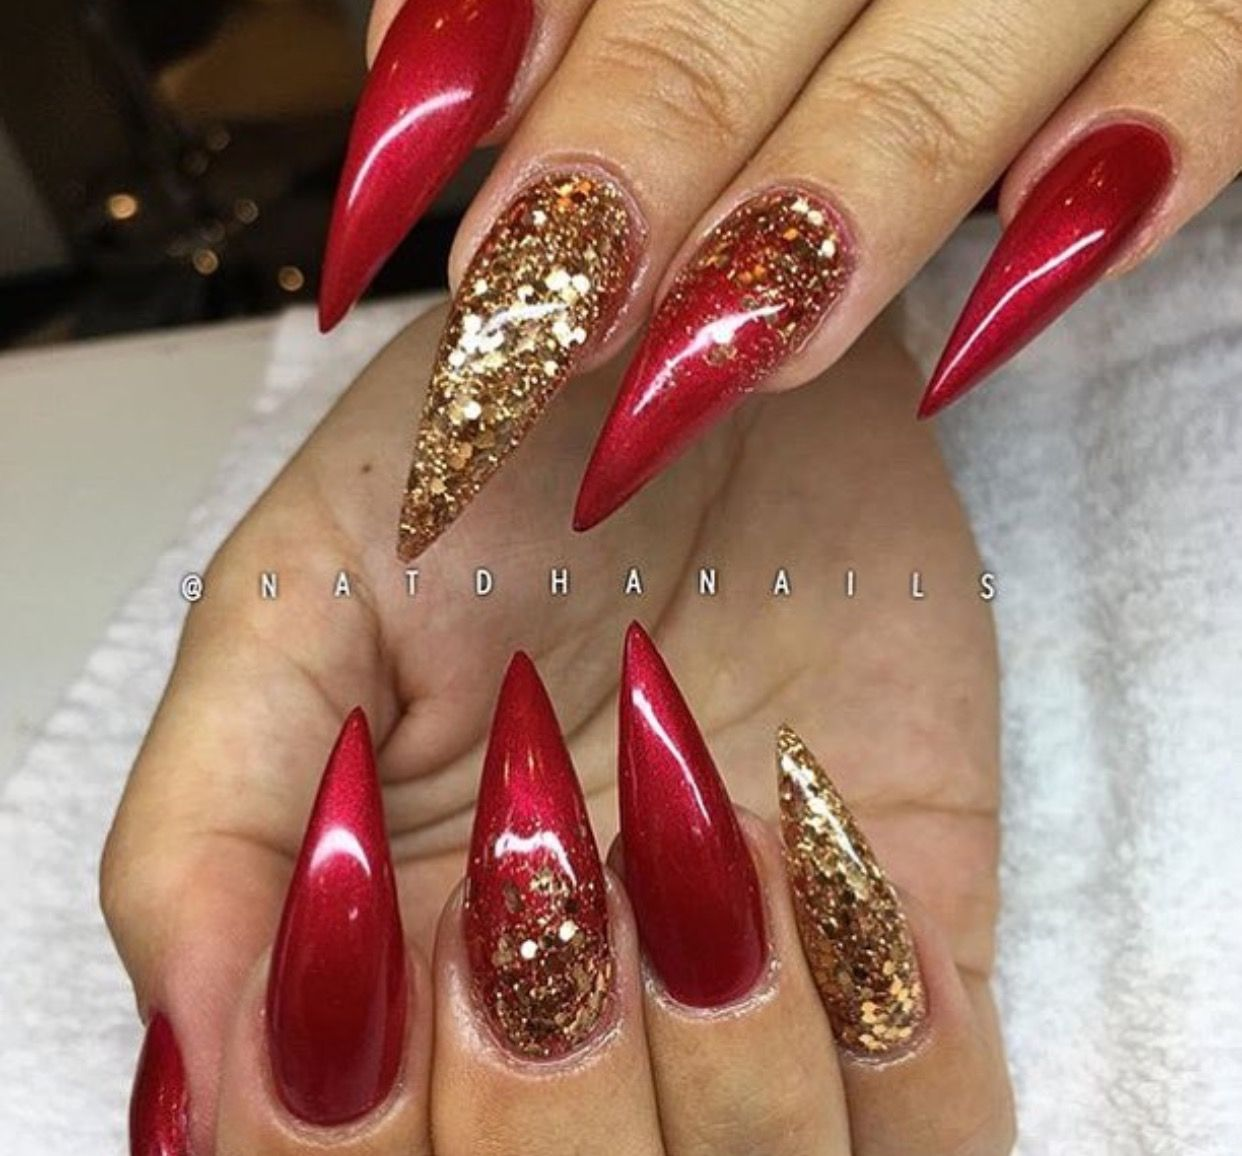 Cranberry stiletto nails with gold accents | Nails | Pinterest ...